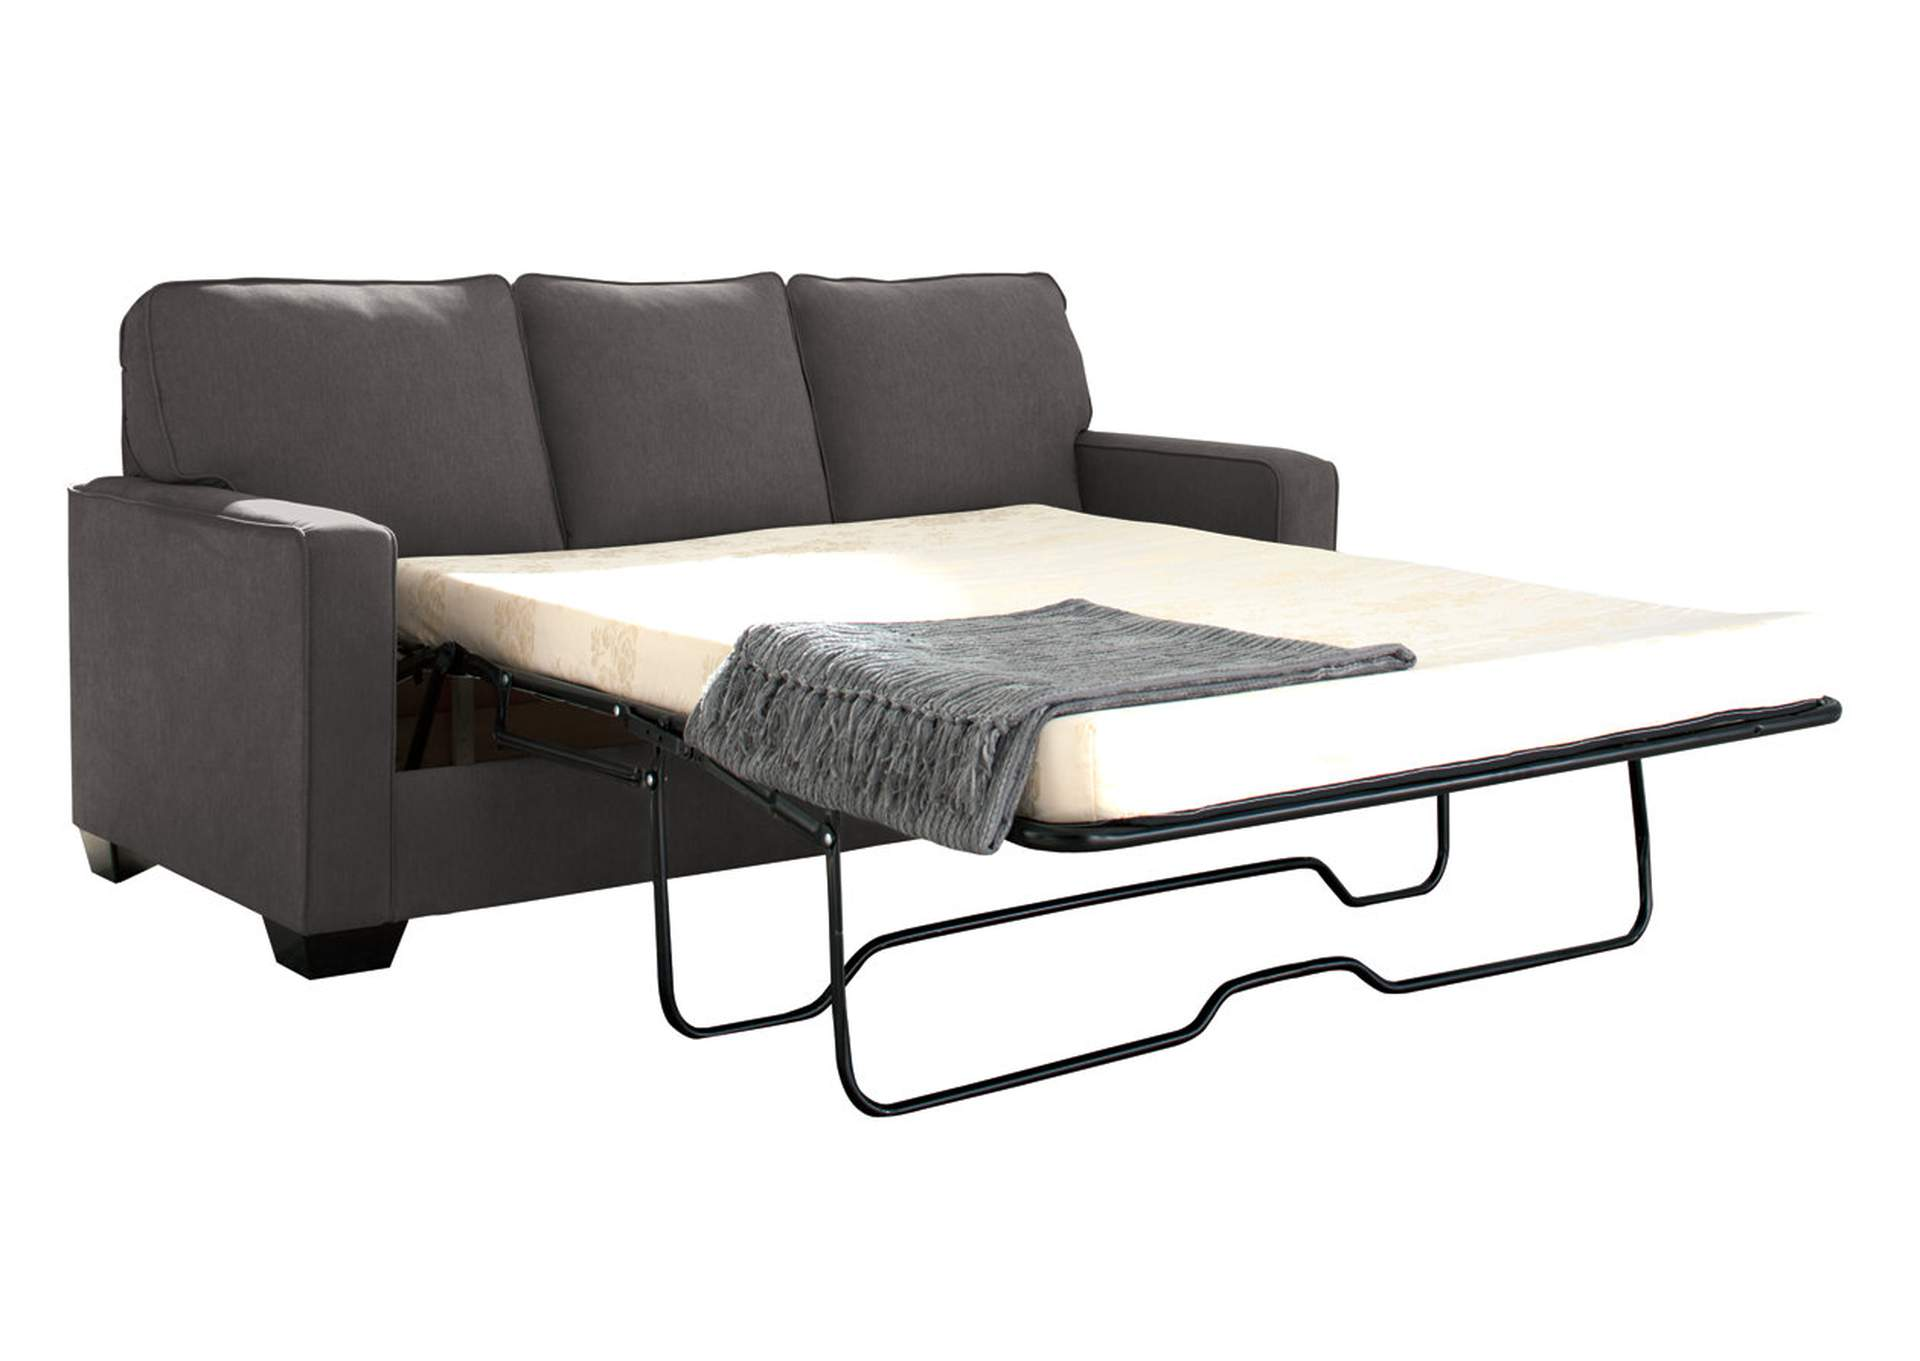 Zeb Charcoal Full Sofa Sleeper,Signature Design By Ashley